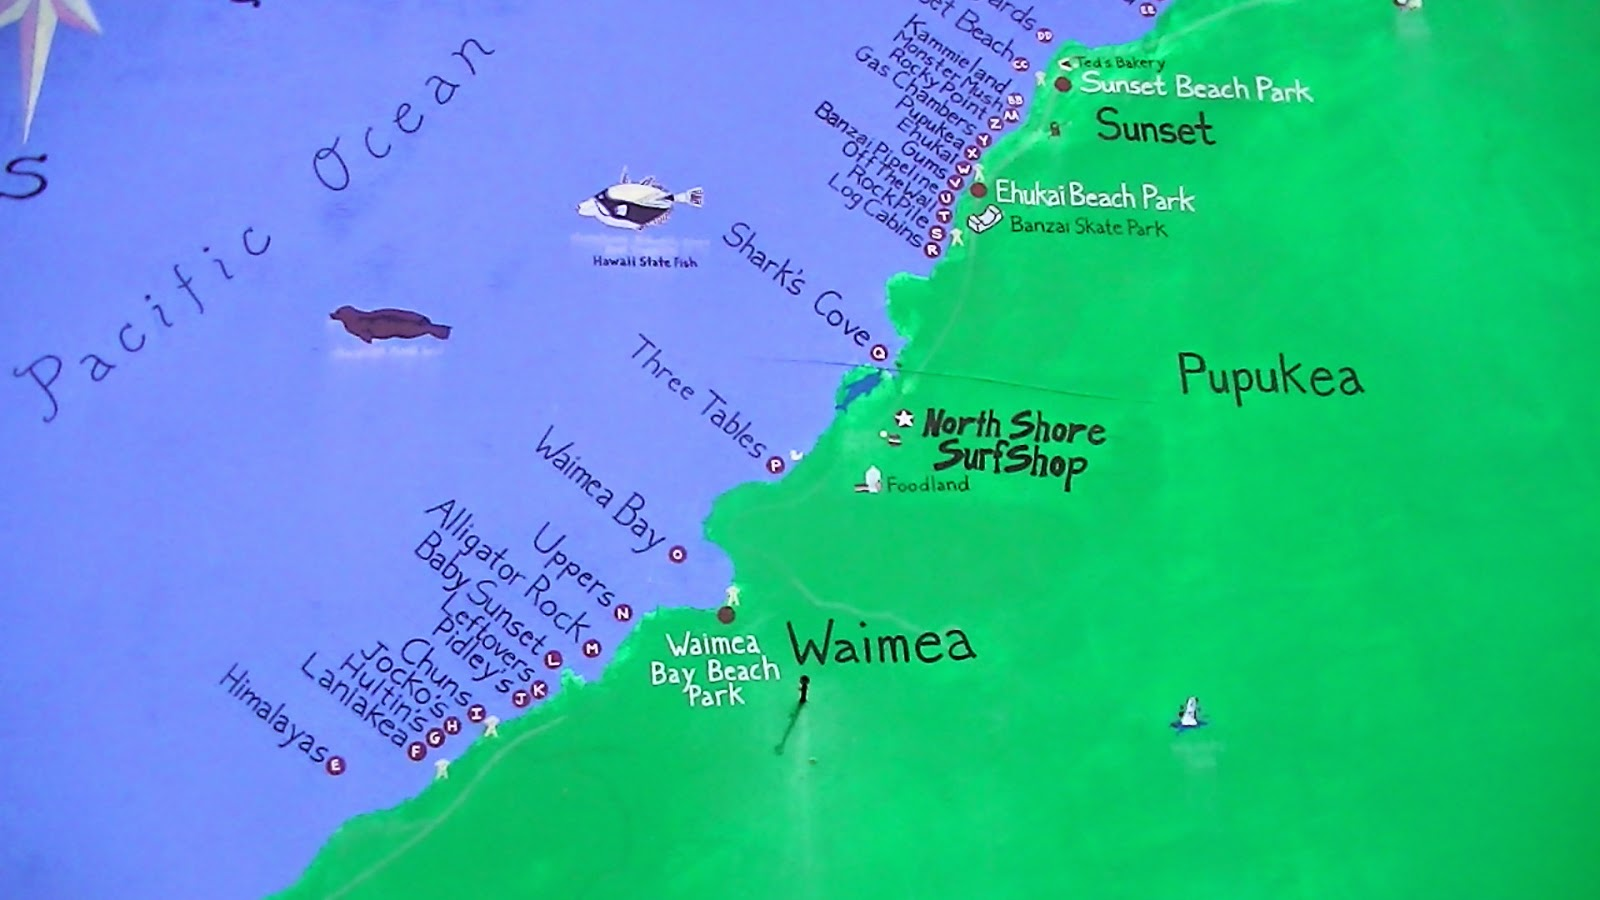 maui map printable with Hawaii Surf Map on Maui Tourist Attractions Map furthermore Omelette Menu additionally Tsunami Warning Are You On Kauai Hitsunami also  also Onde Ficar No Havai Melhores Ilhas.